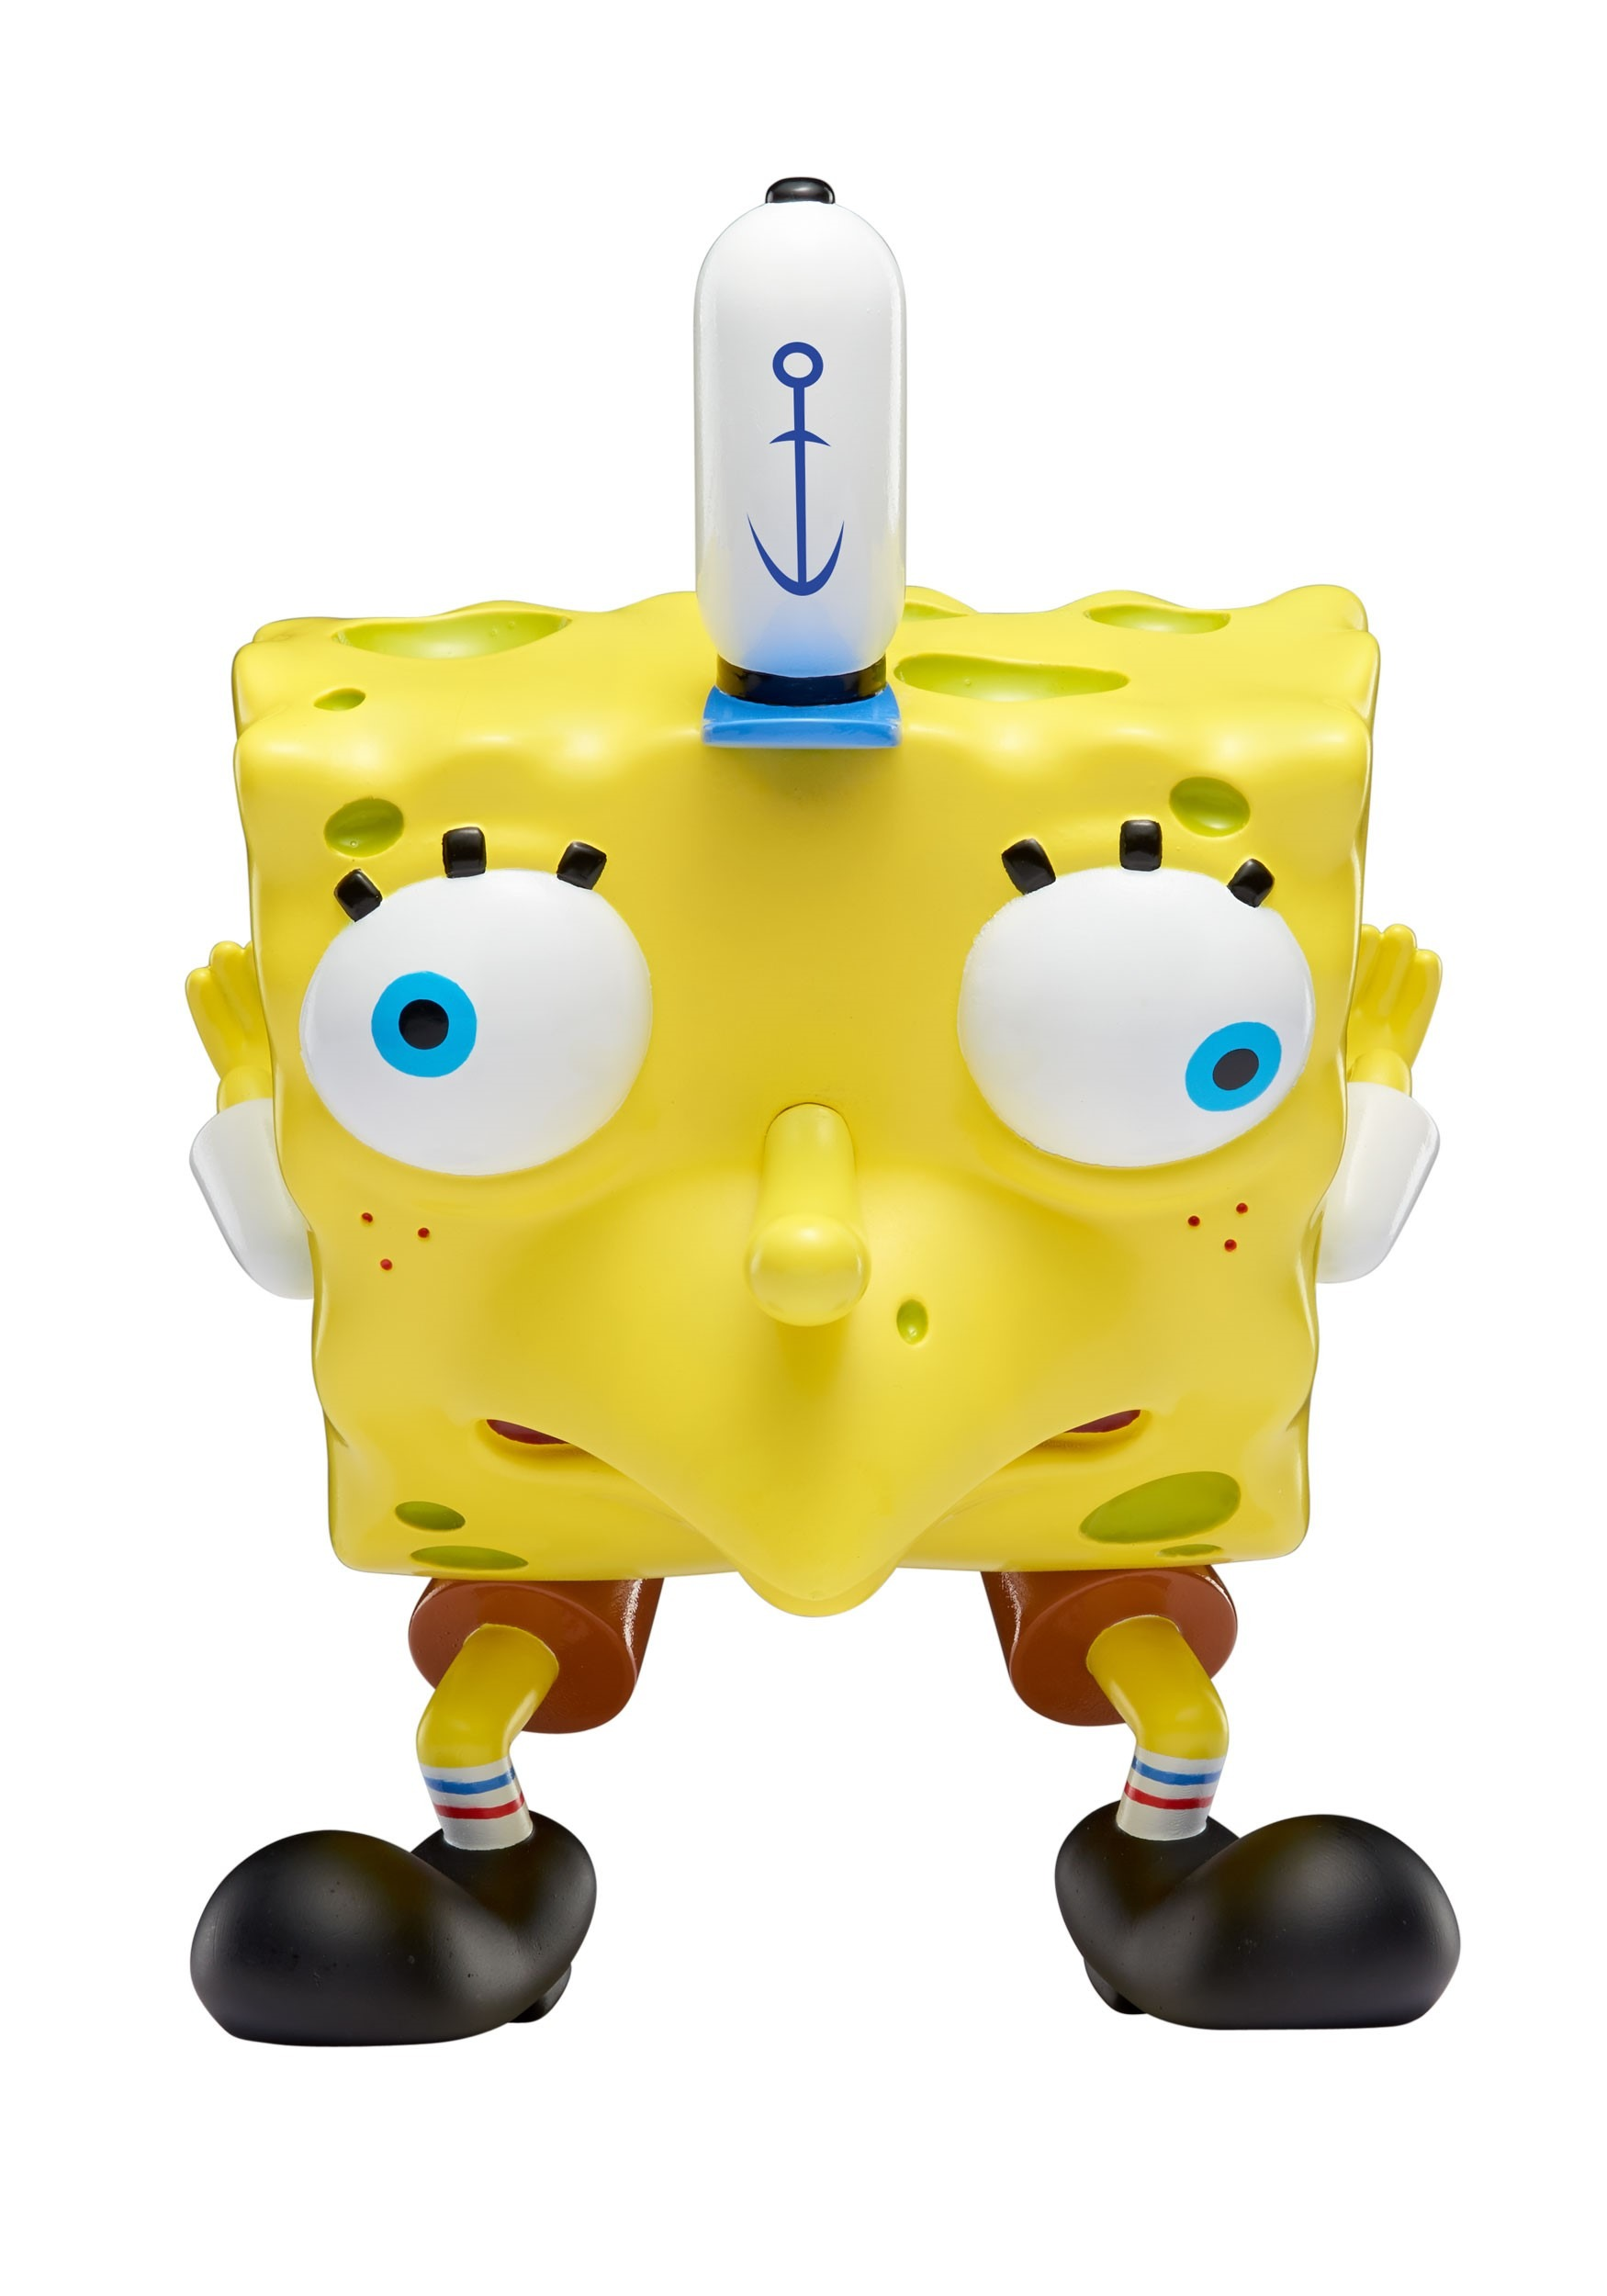 Spongebob_SquarePants_Masterpiece_Collection_Mocking_Figure